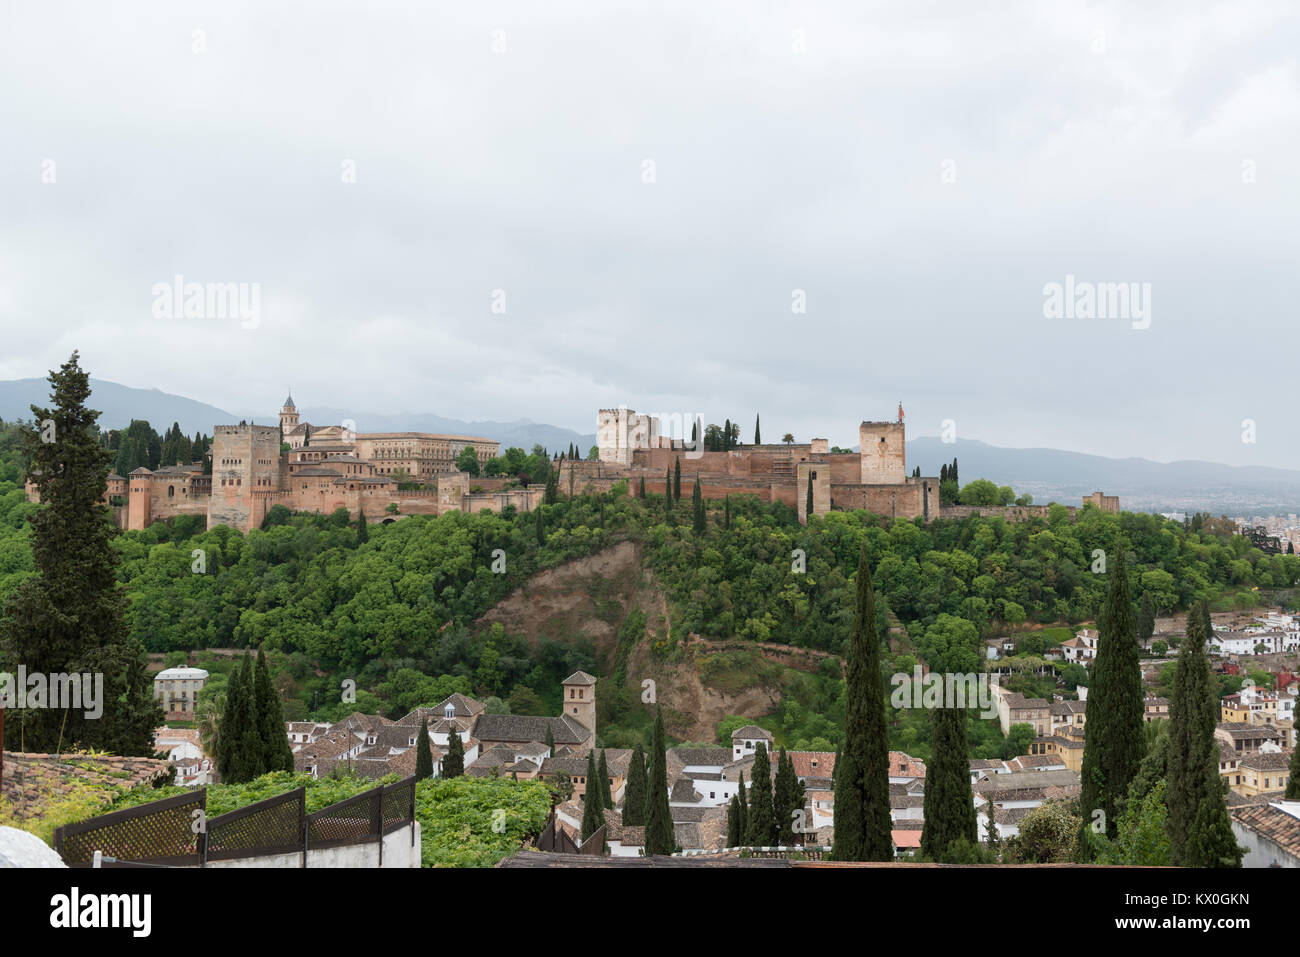 Alhambra in Granada, Andalusia, Spain. View of the total complex. - Stock Image